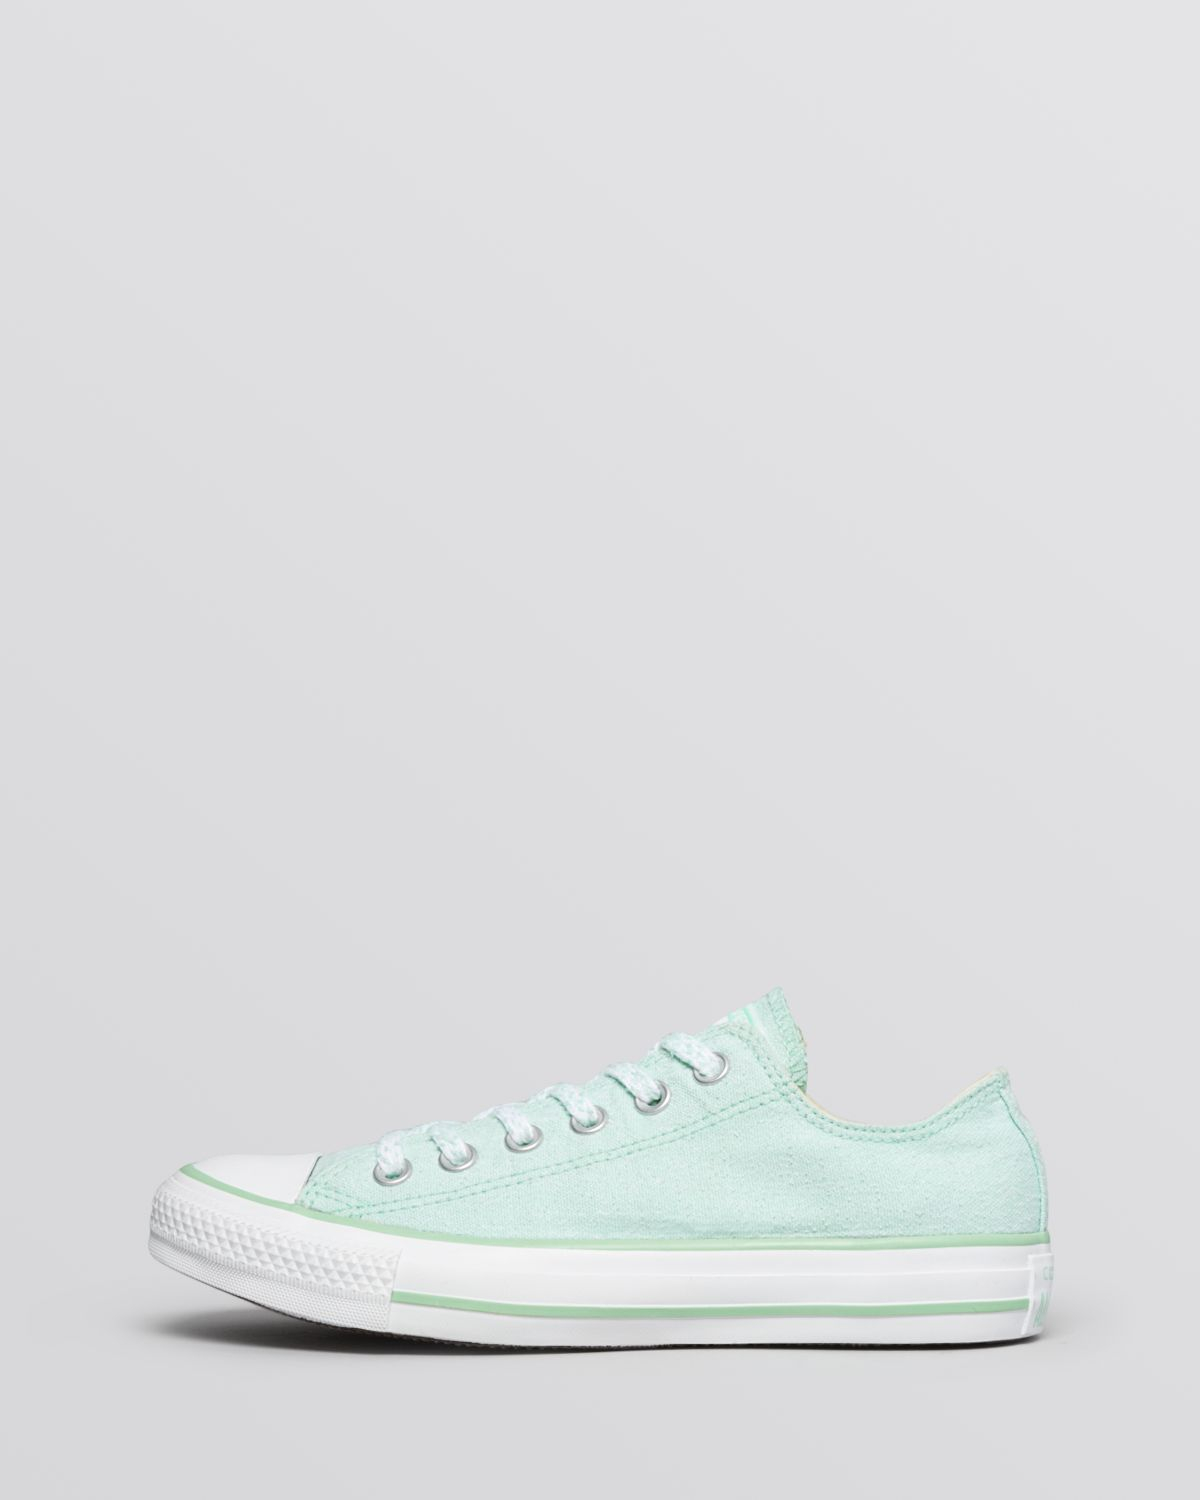 Converse Flat Sneakers Chuck Taylor All Star Shoreline in Oyster Gray (Grey)